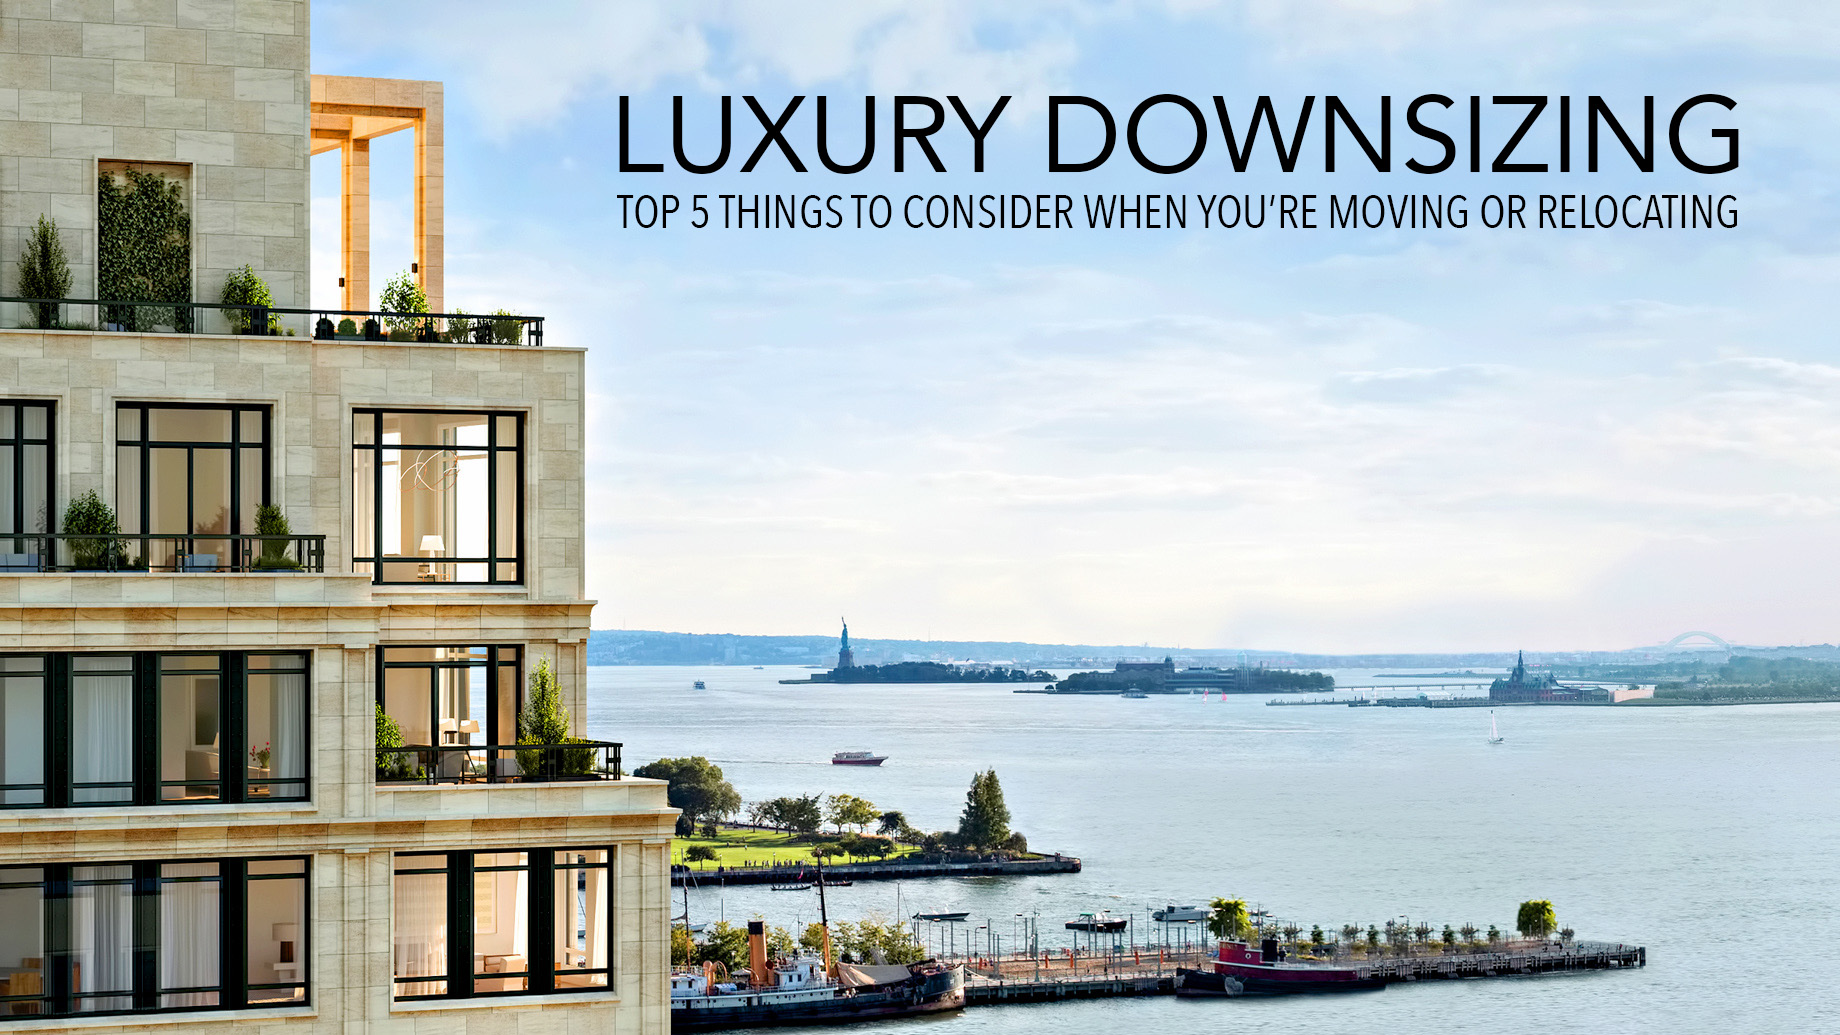 Luxury Downsizing - Top 5 Things to Consider When You're Moving or Relocating